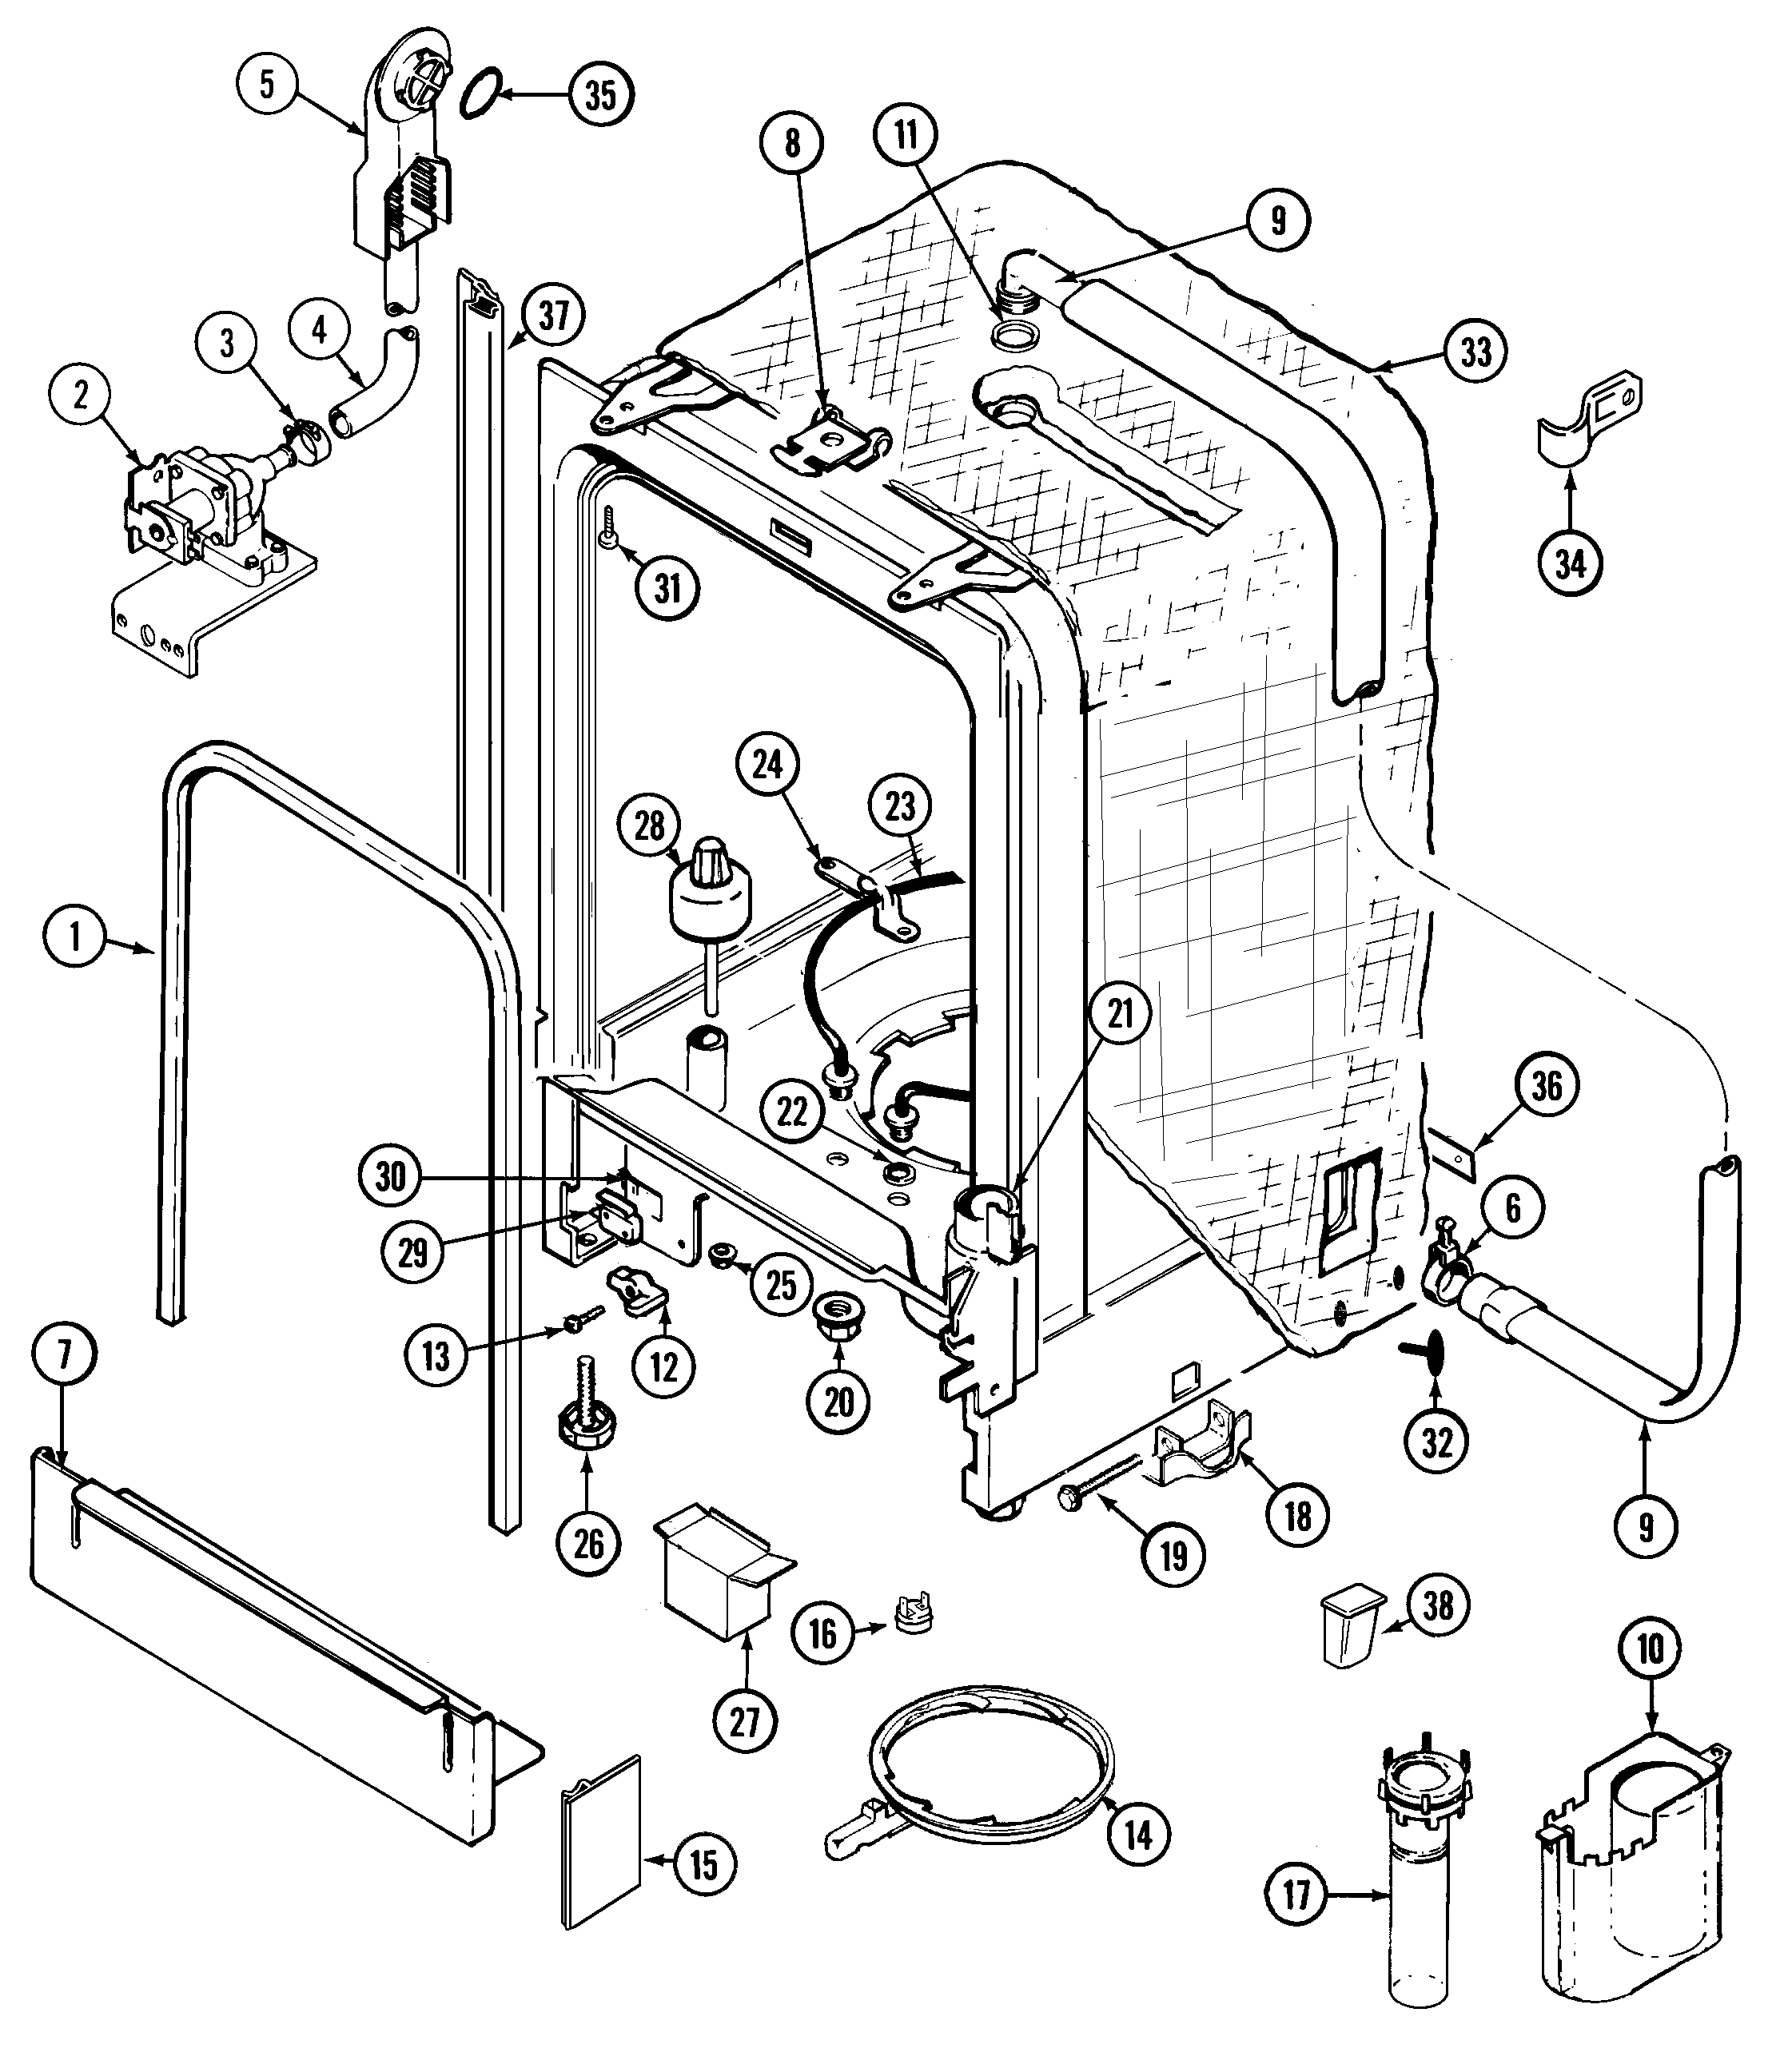 Whirlpool Parts: Whirlpool Gold Dishwasher Parts Diagram